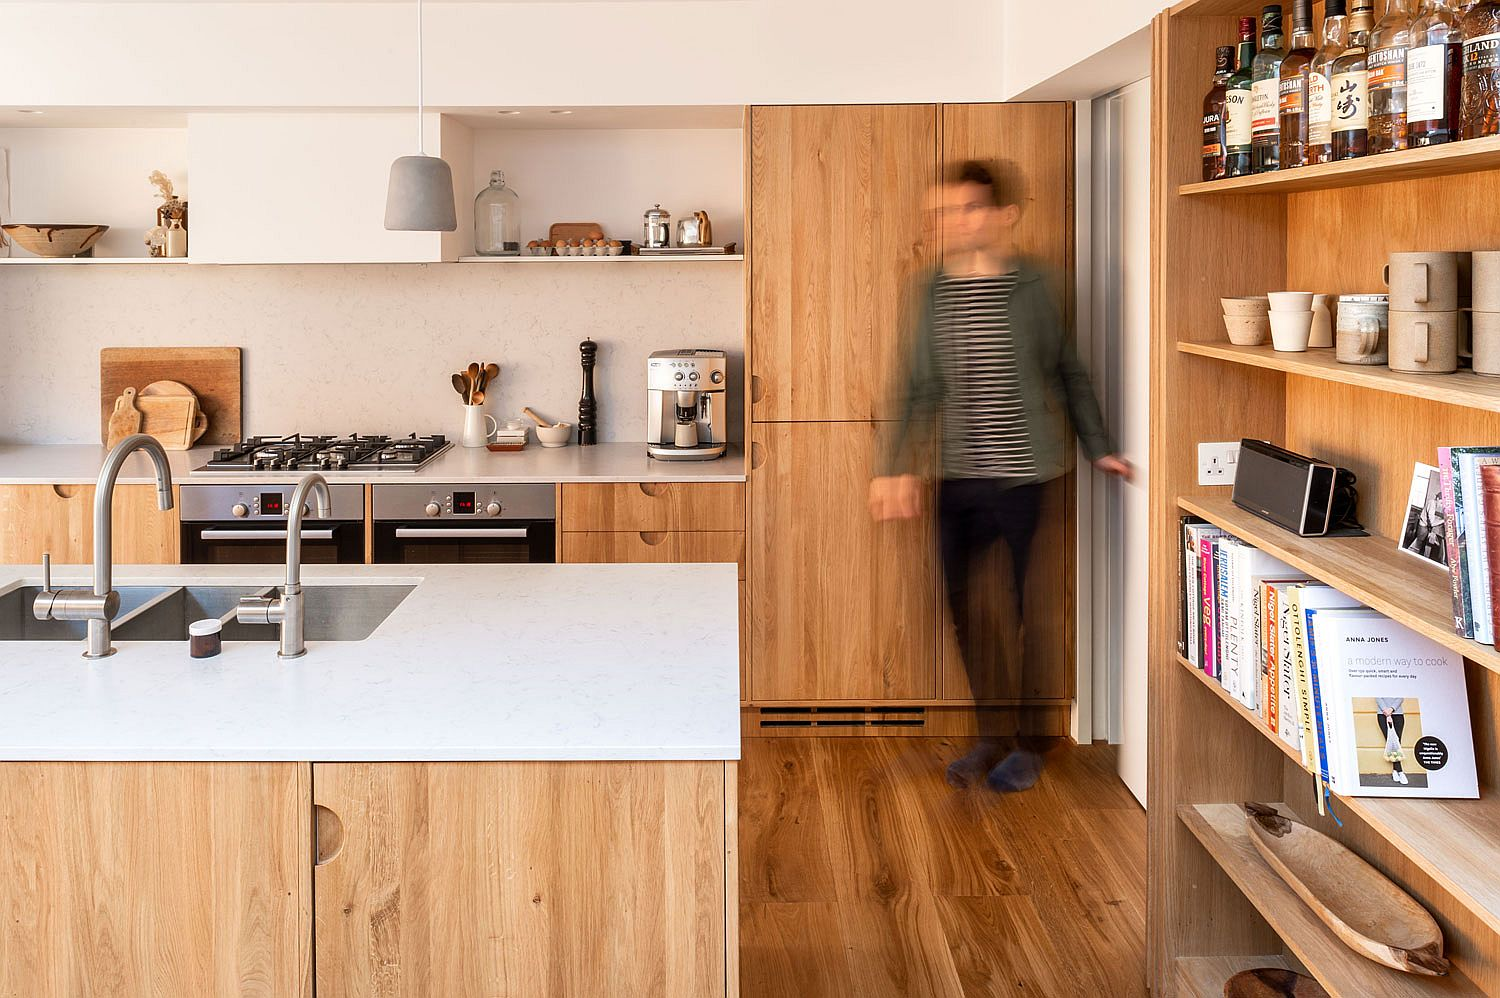 Floating shelves and closed cabinets combine to shape an efficient modern kitchen in white and wood